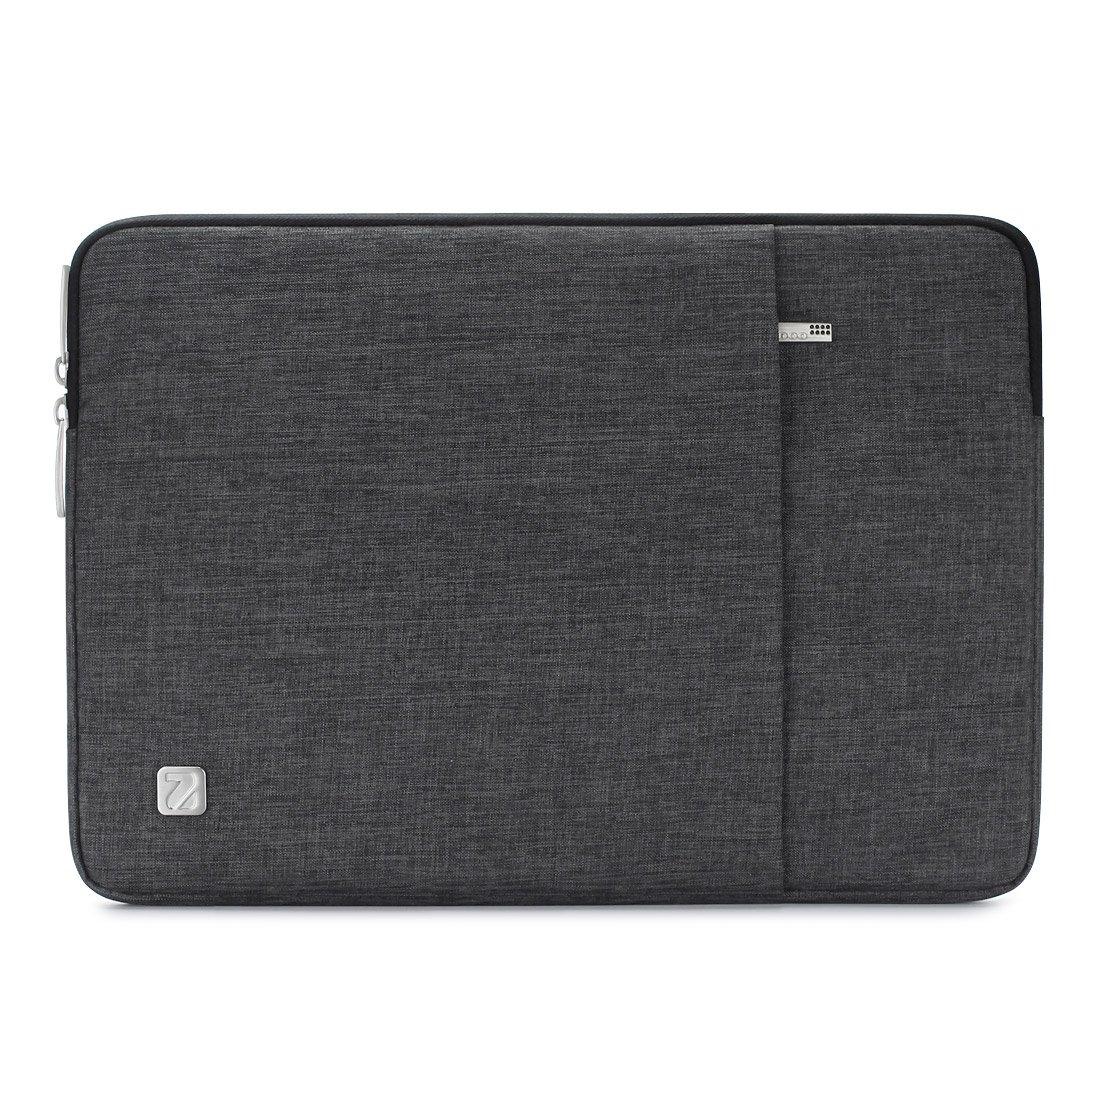 "NIDOO 17 inch Laptop Sleeve Case Water-Resistant Protective Computer Cover Portable Carrying Bag Pouch for 17.3"" Notebook/Dell Inspiron 17 / MSI GS73VR Stealth Pro/Lenovo/Acer/ASUS, Dark Grey"